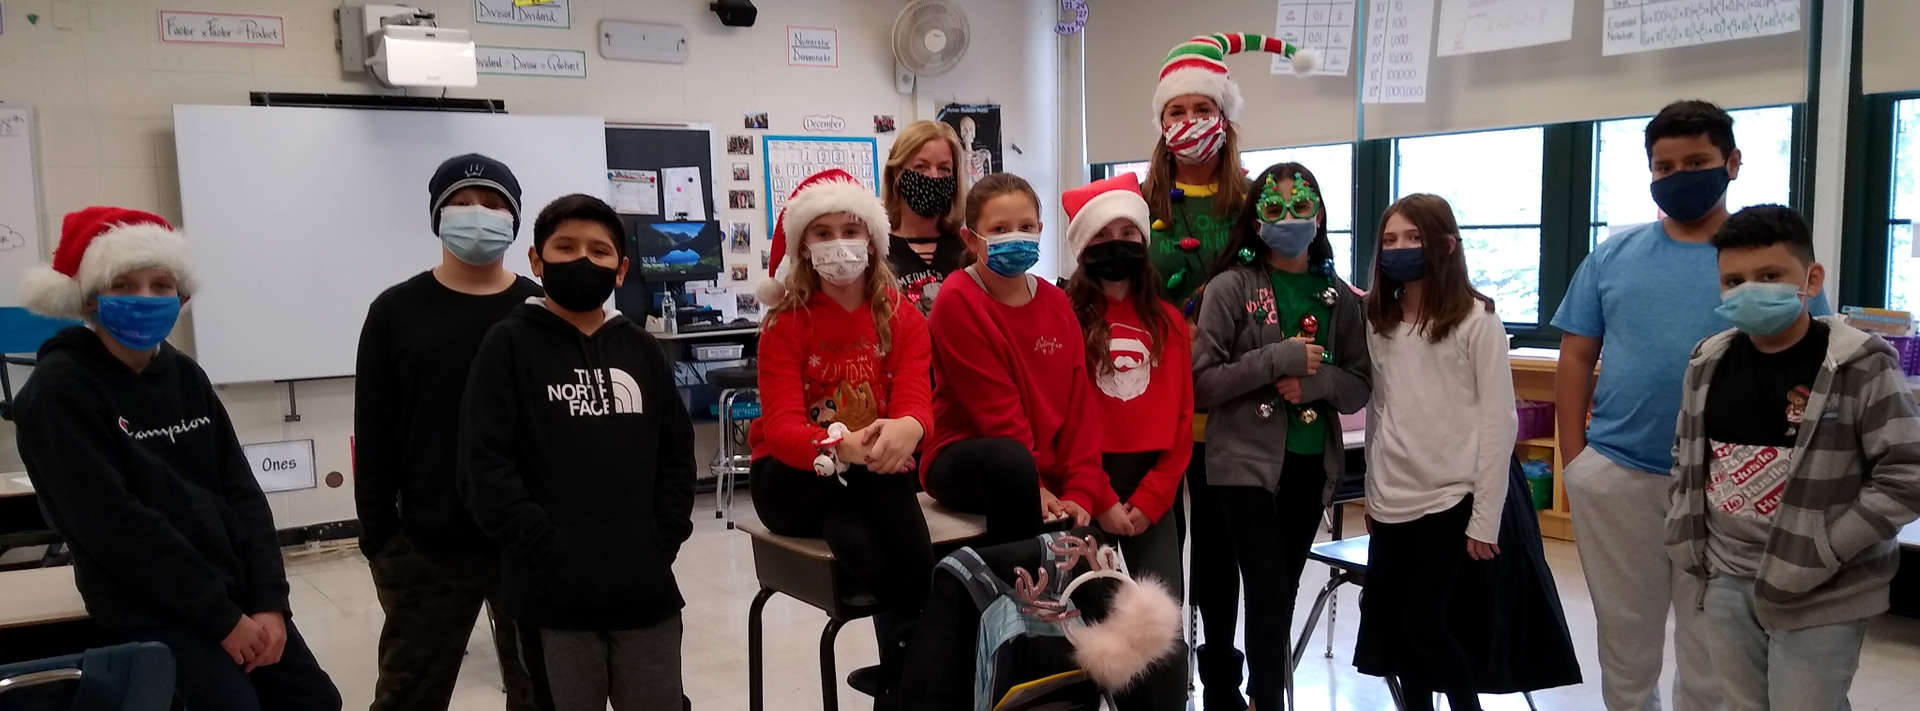 Group of Students dressed in festive holiday gear